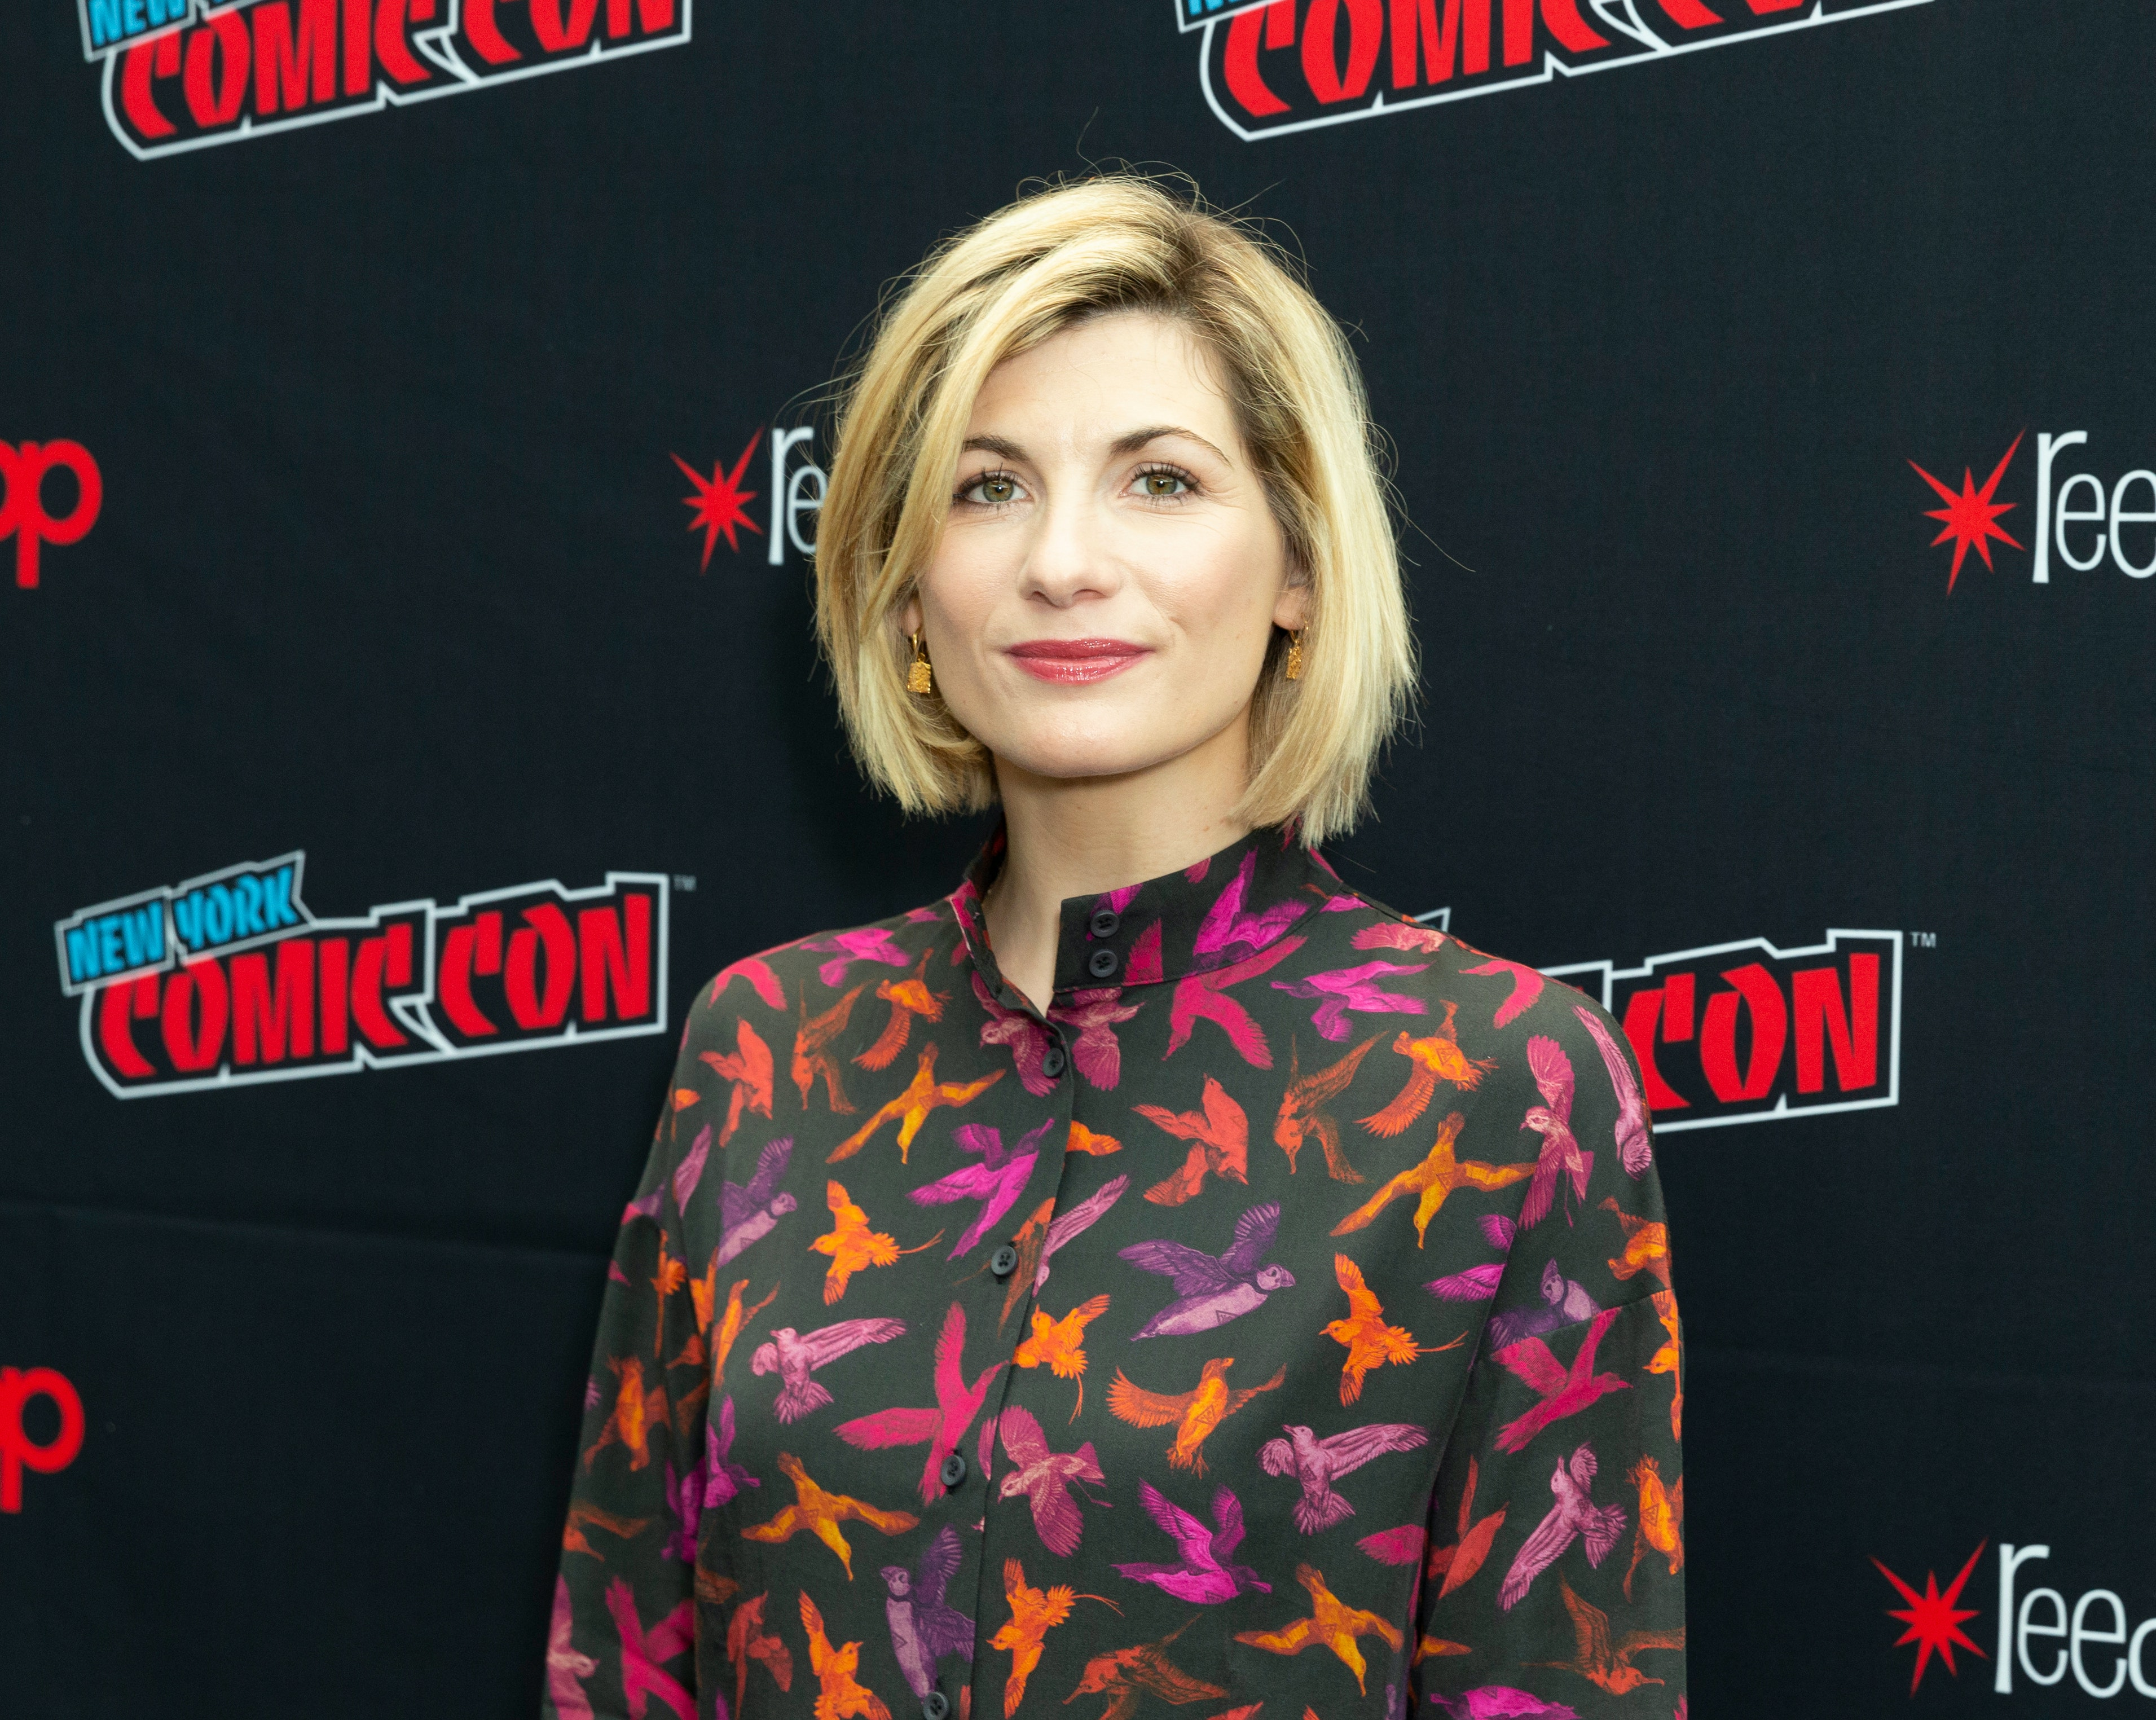 Actors at all levels face pressure to change their appearance, not just stars like Doctor Who's Jodie Whittaker